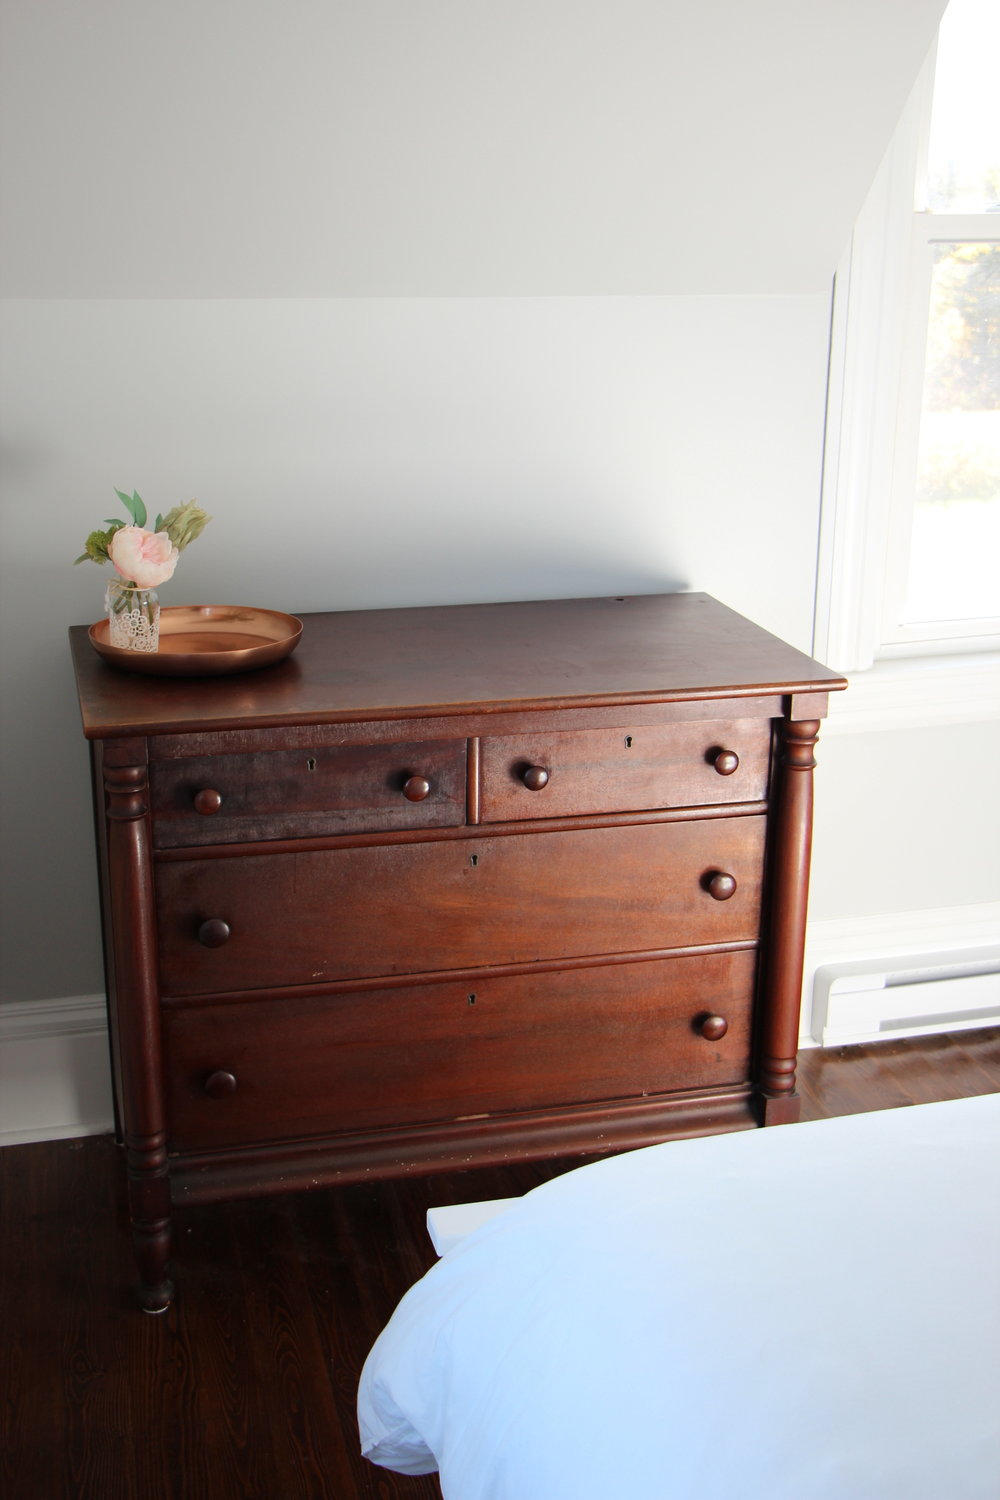 Antique furnishings transport you back in time